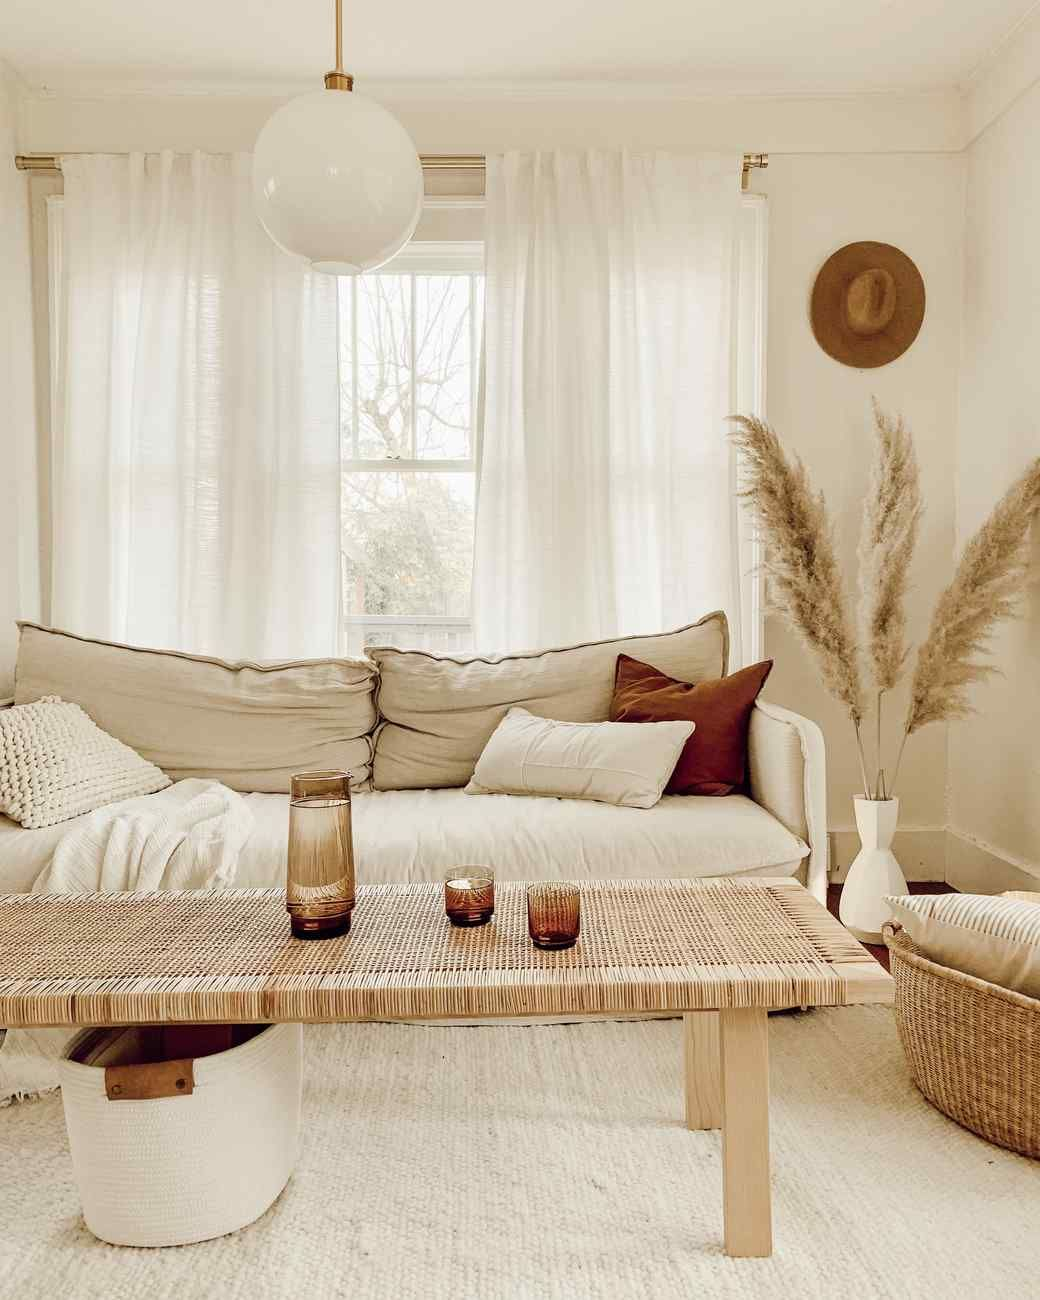 Feng Shui Living Room Essentials & Decor Tips - Unboxed